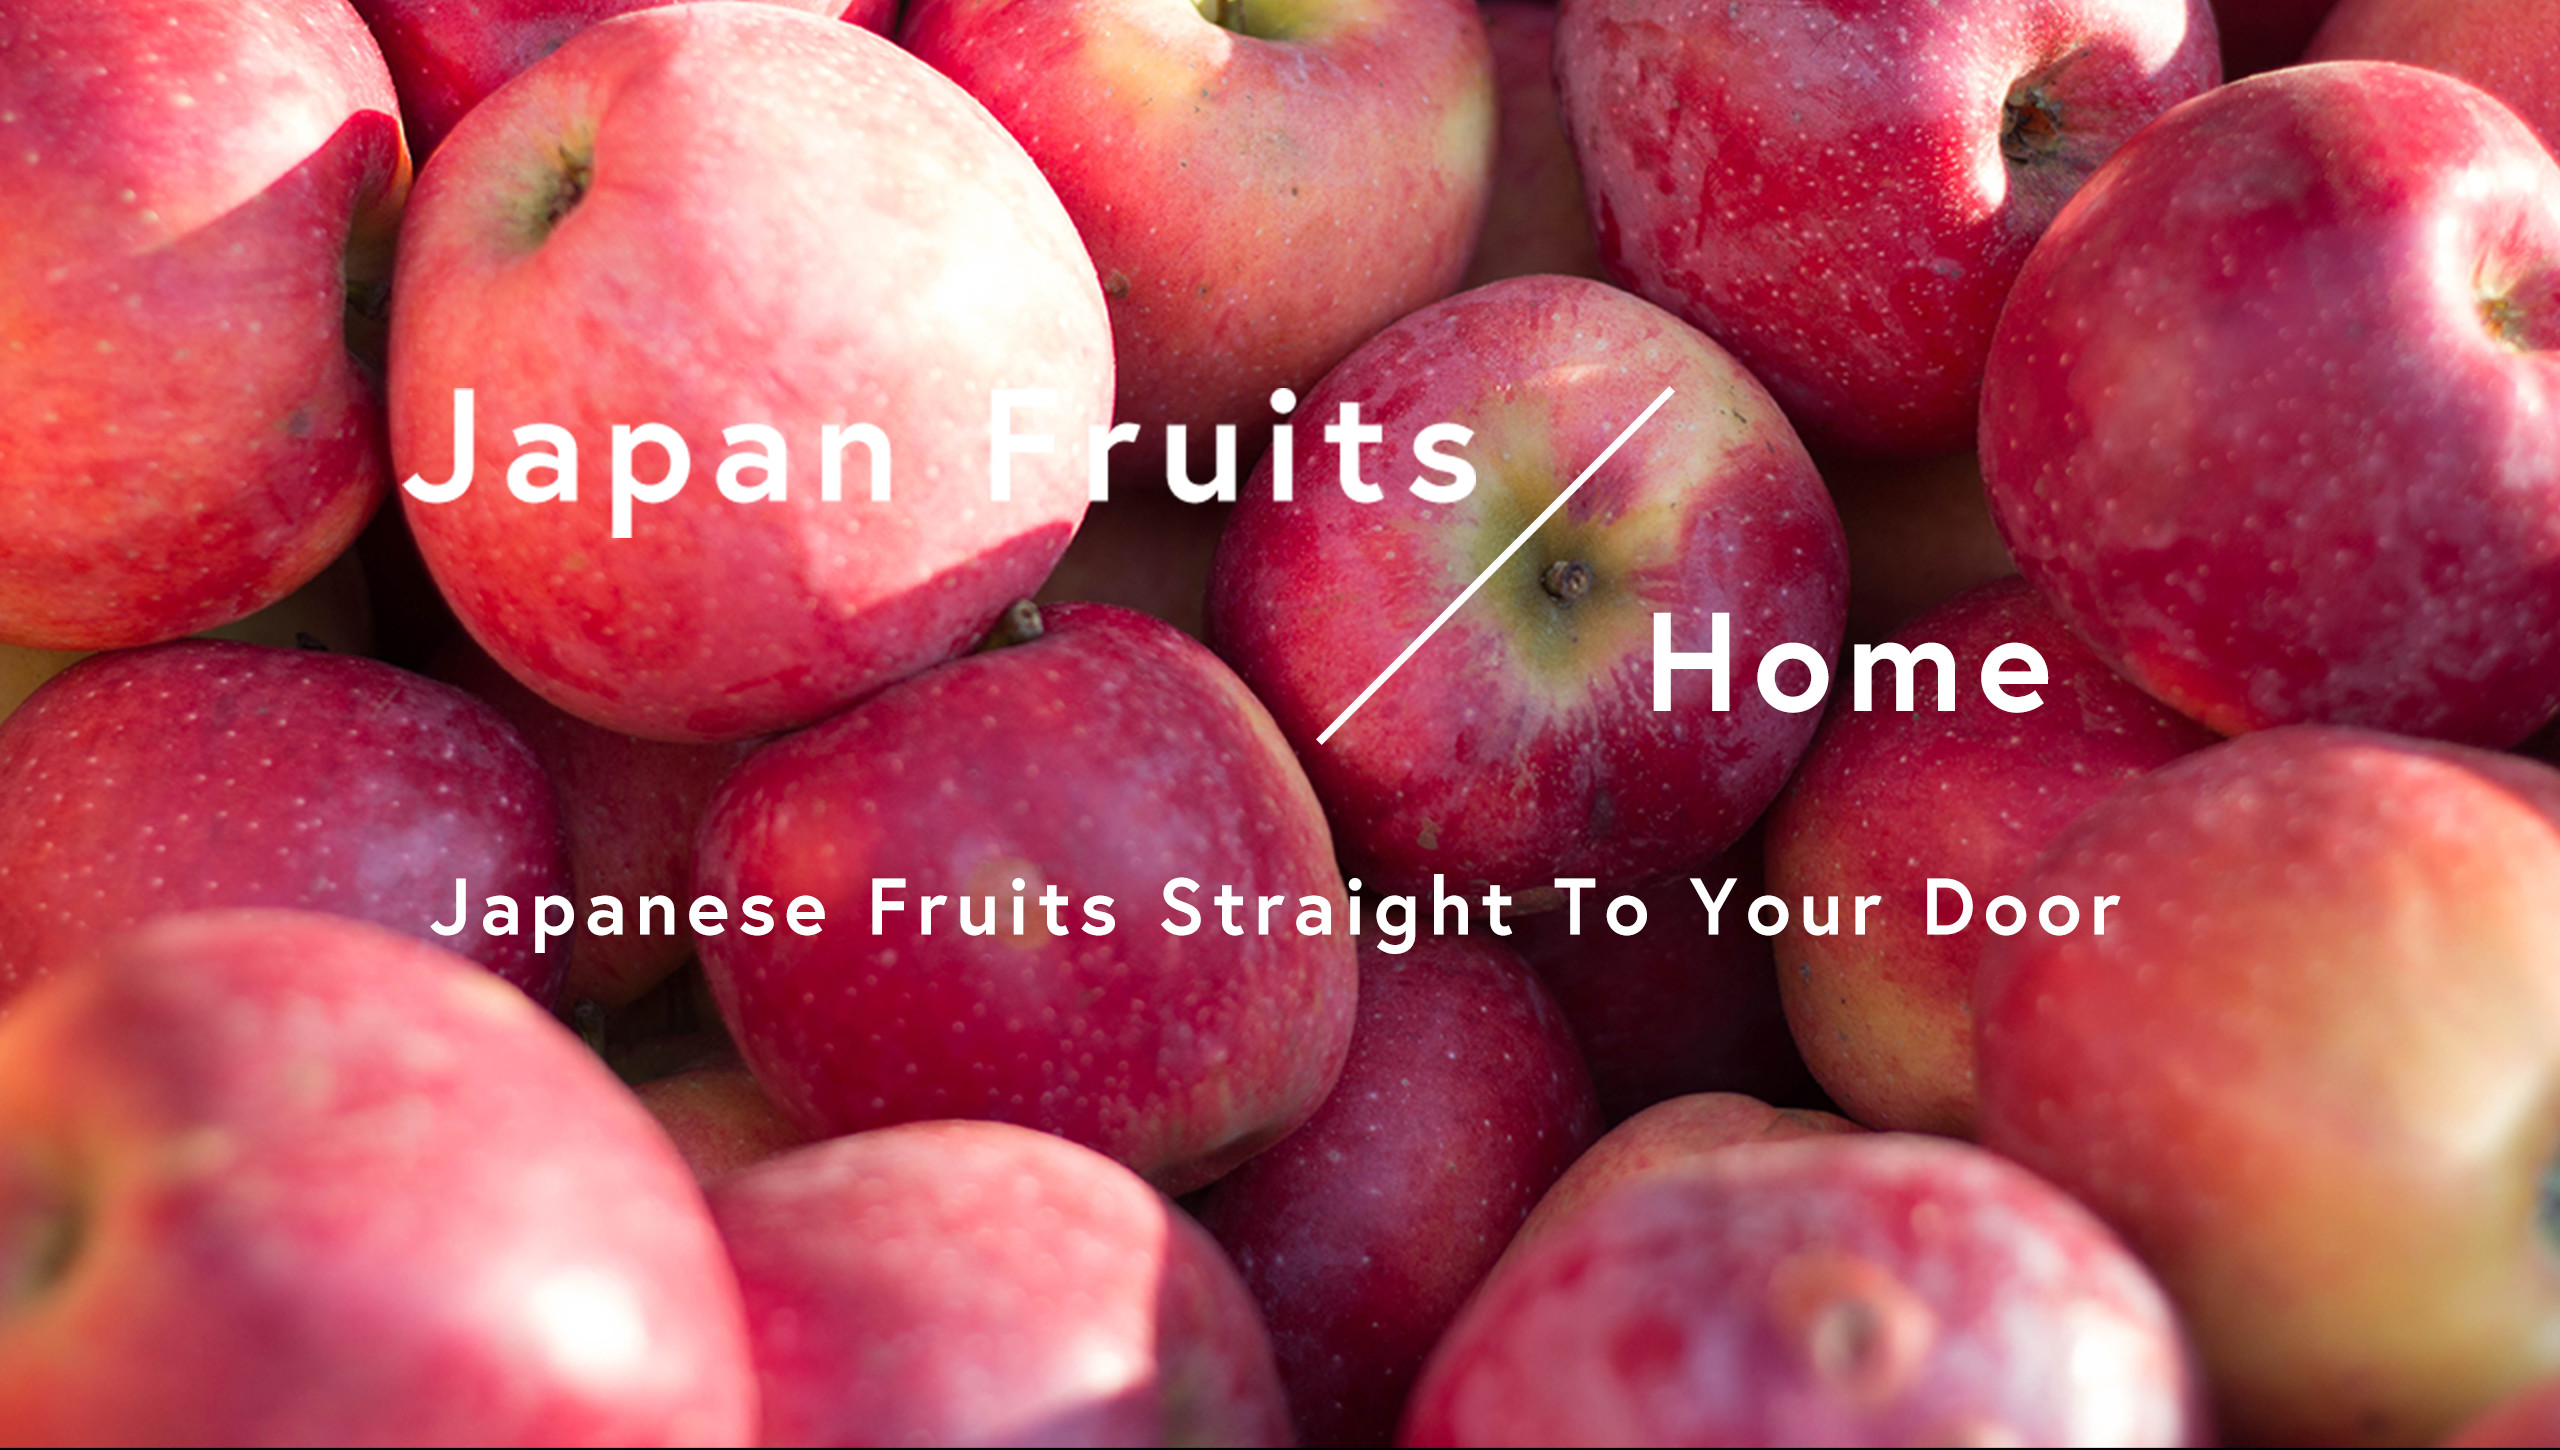 Japanese Fruits Straight To Your Door - Japanese Fruits Straight To Your Door